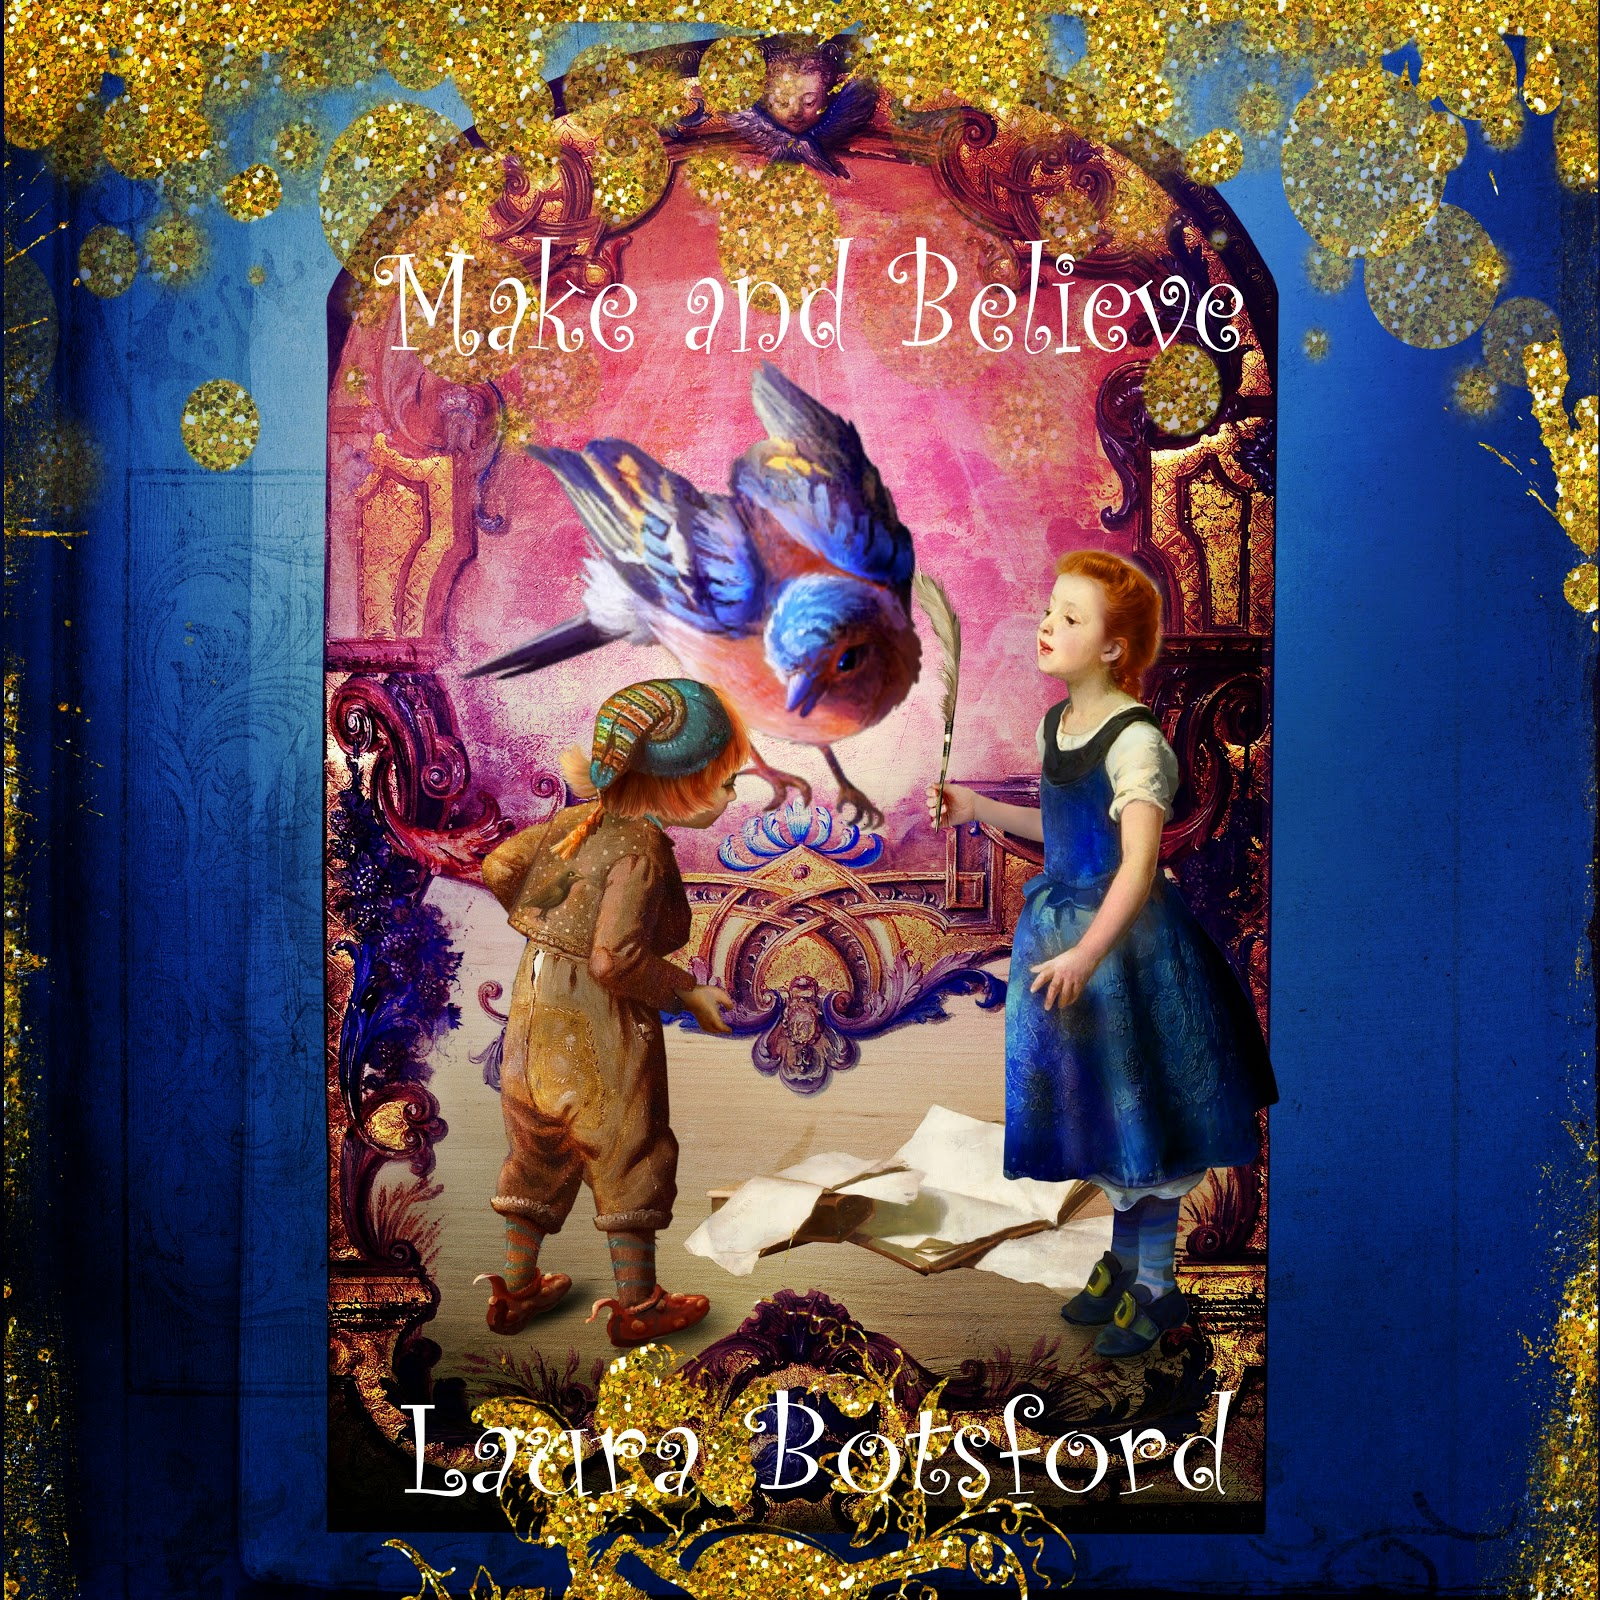 http://www.lulu.com/shop/laura-botsford/make-and-believe/paperback/product-21929332.html